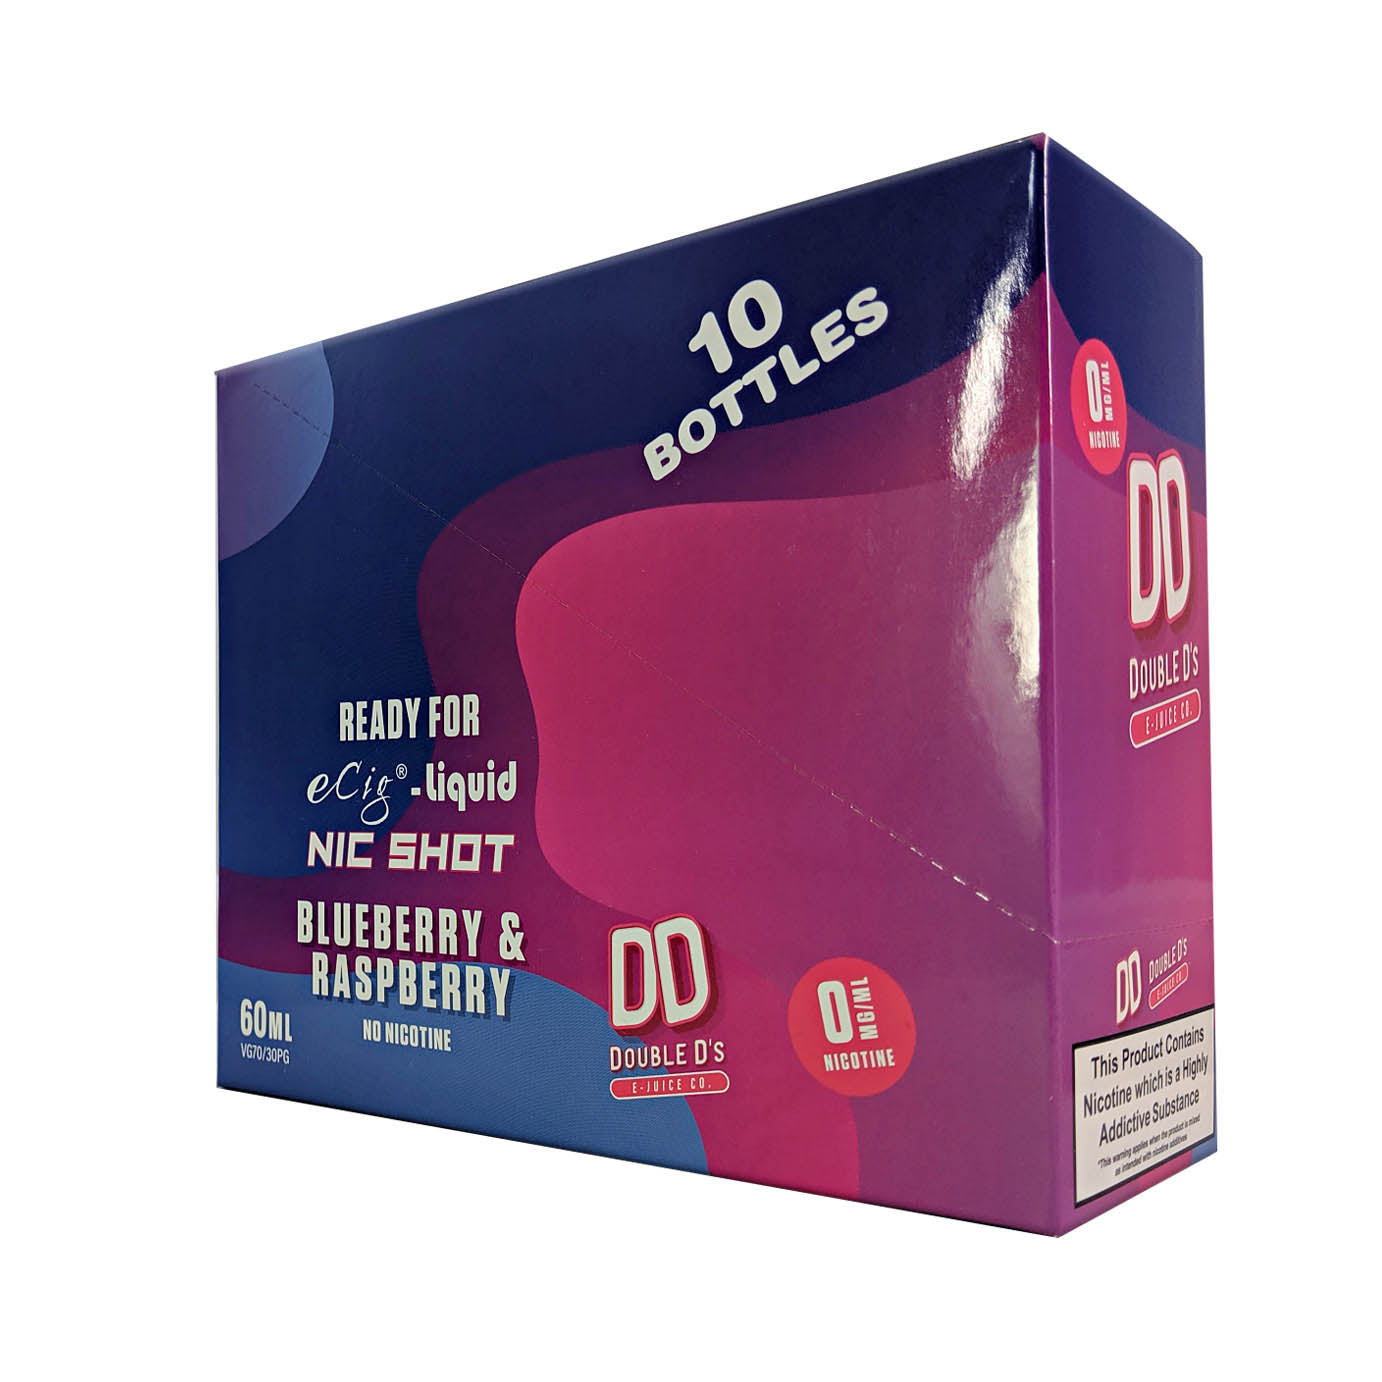 DD Double D's 10 Pack Blueberry & Raspberry flavoured 50ml E-Liquid